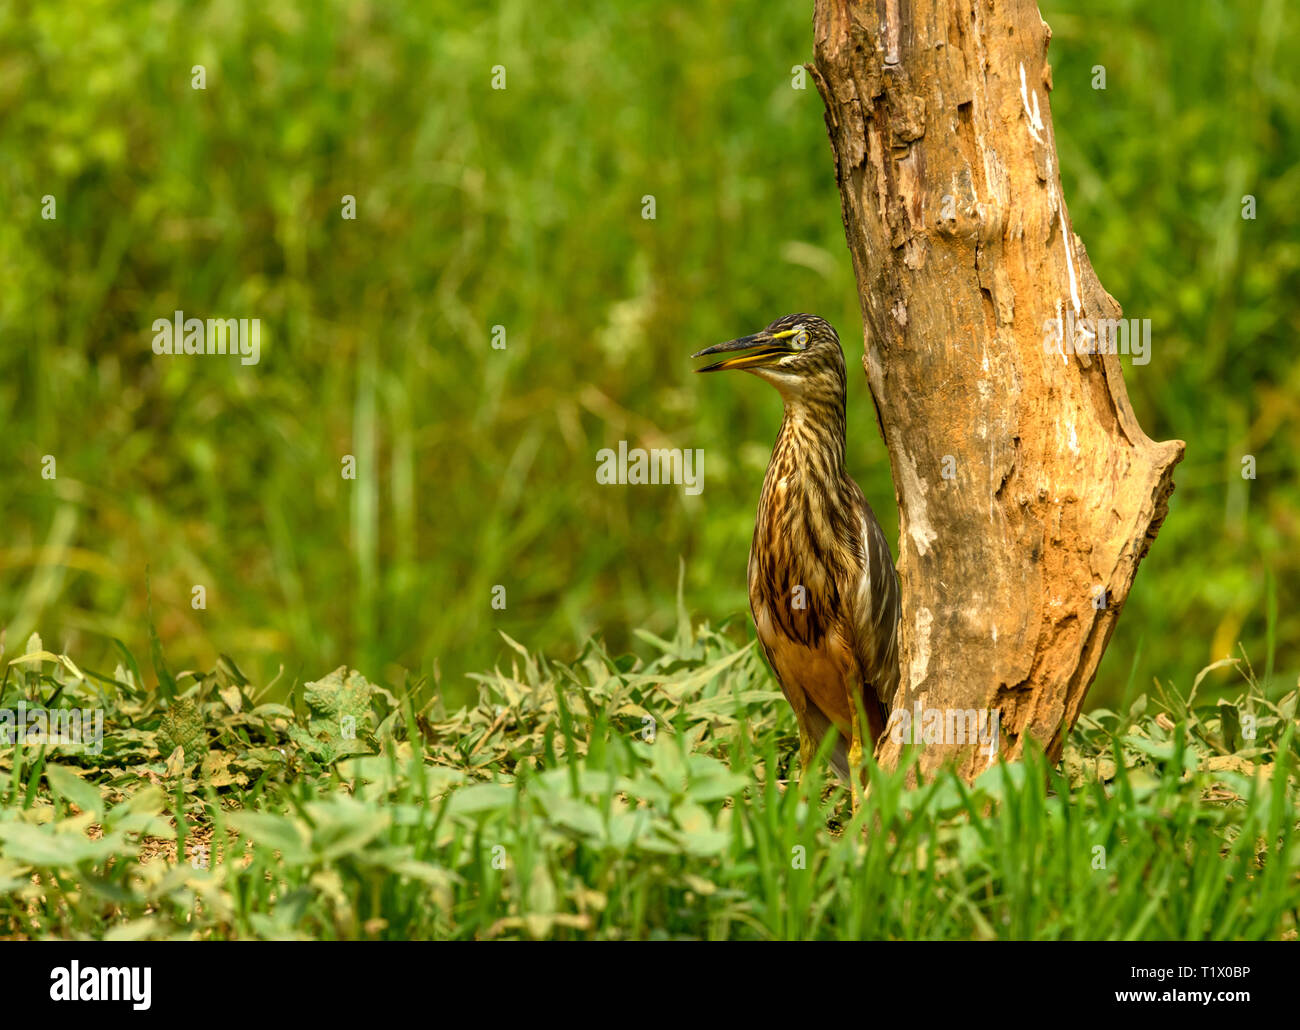 Pond heron and egrets in natural habitat, with expanded wings, searching for food... - Stock Image